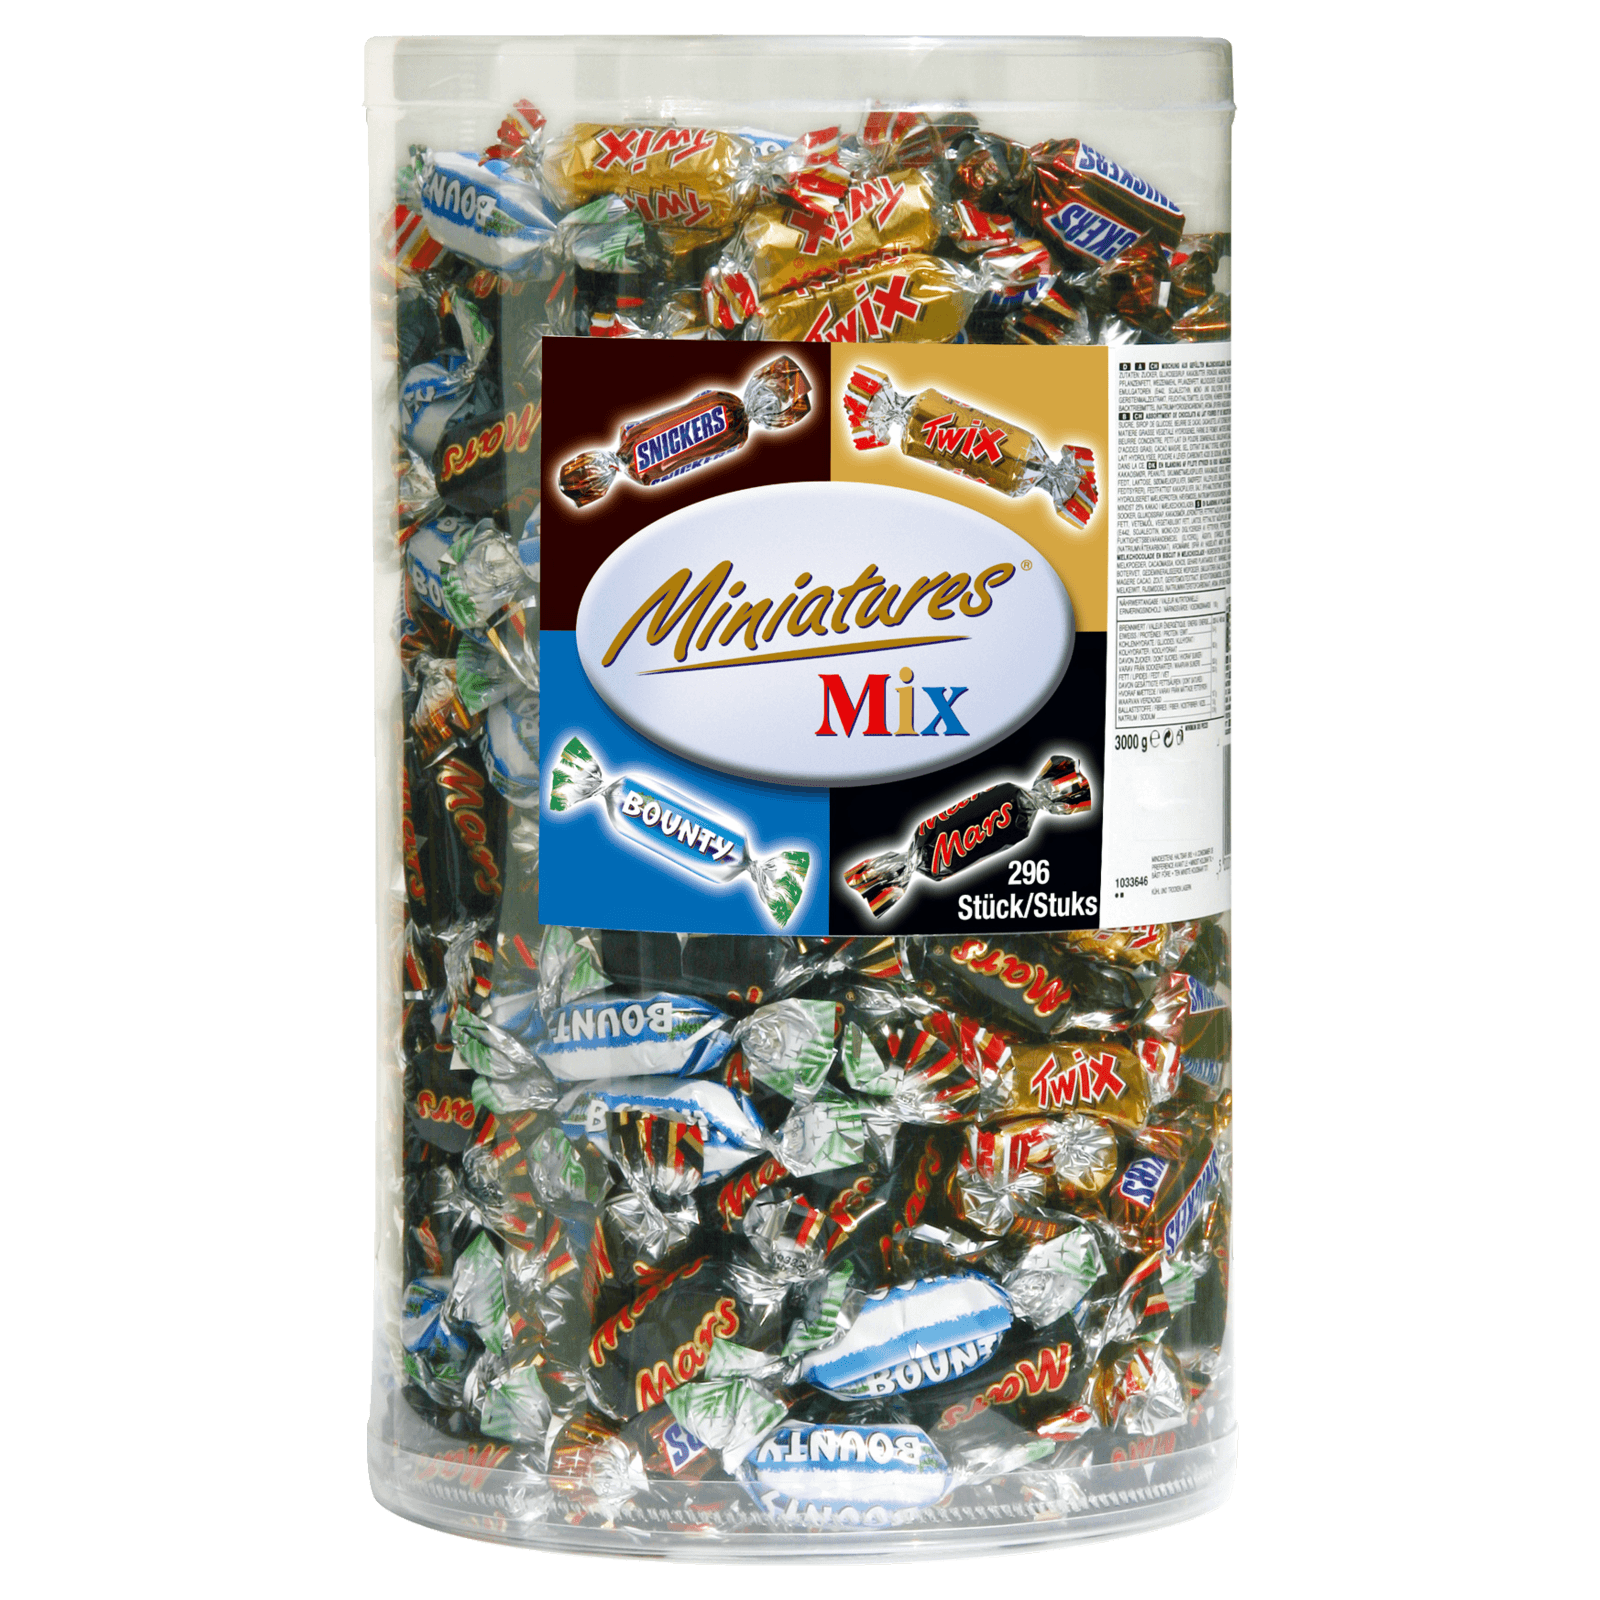 Mars Miniatures Mix Box 3kg